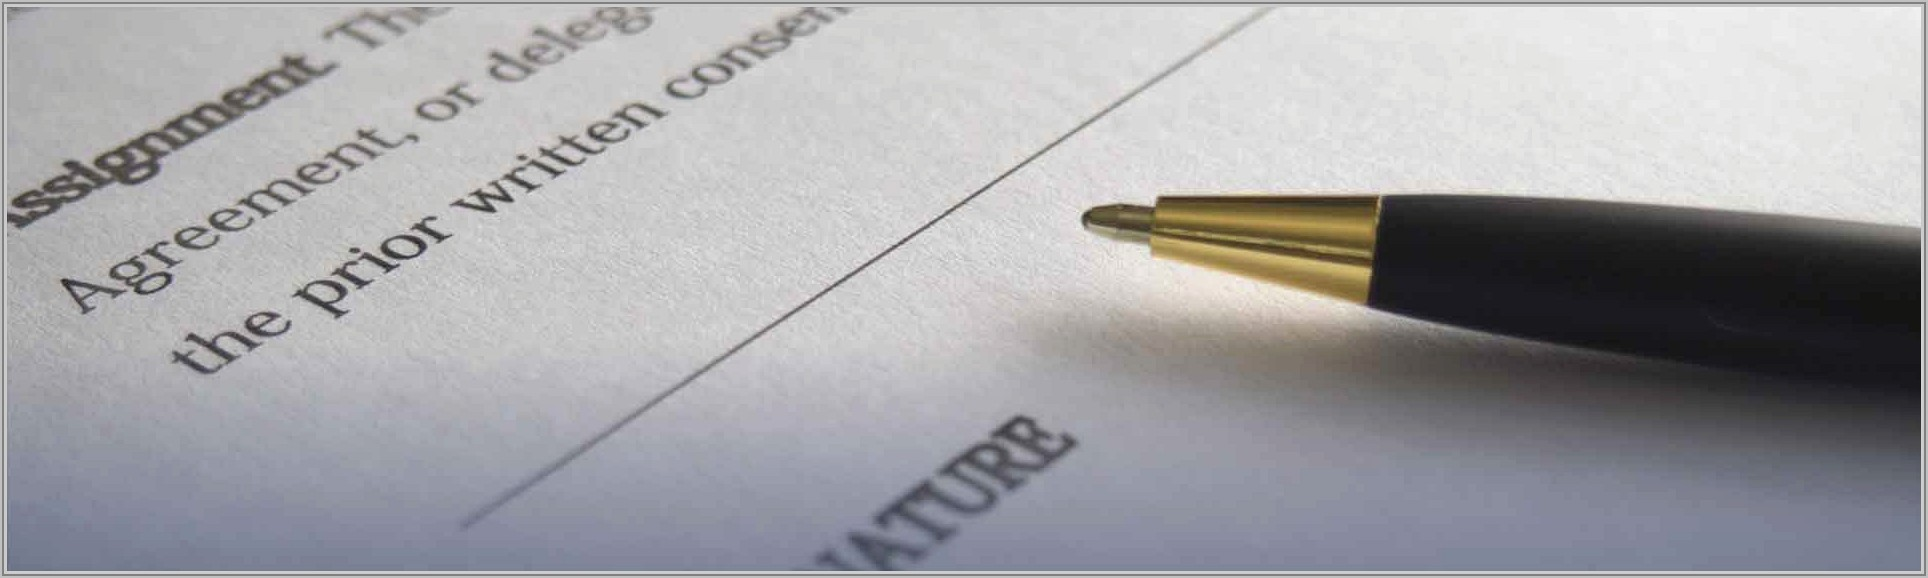 Stock Purchase Agreement California Form